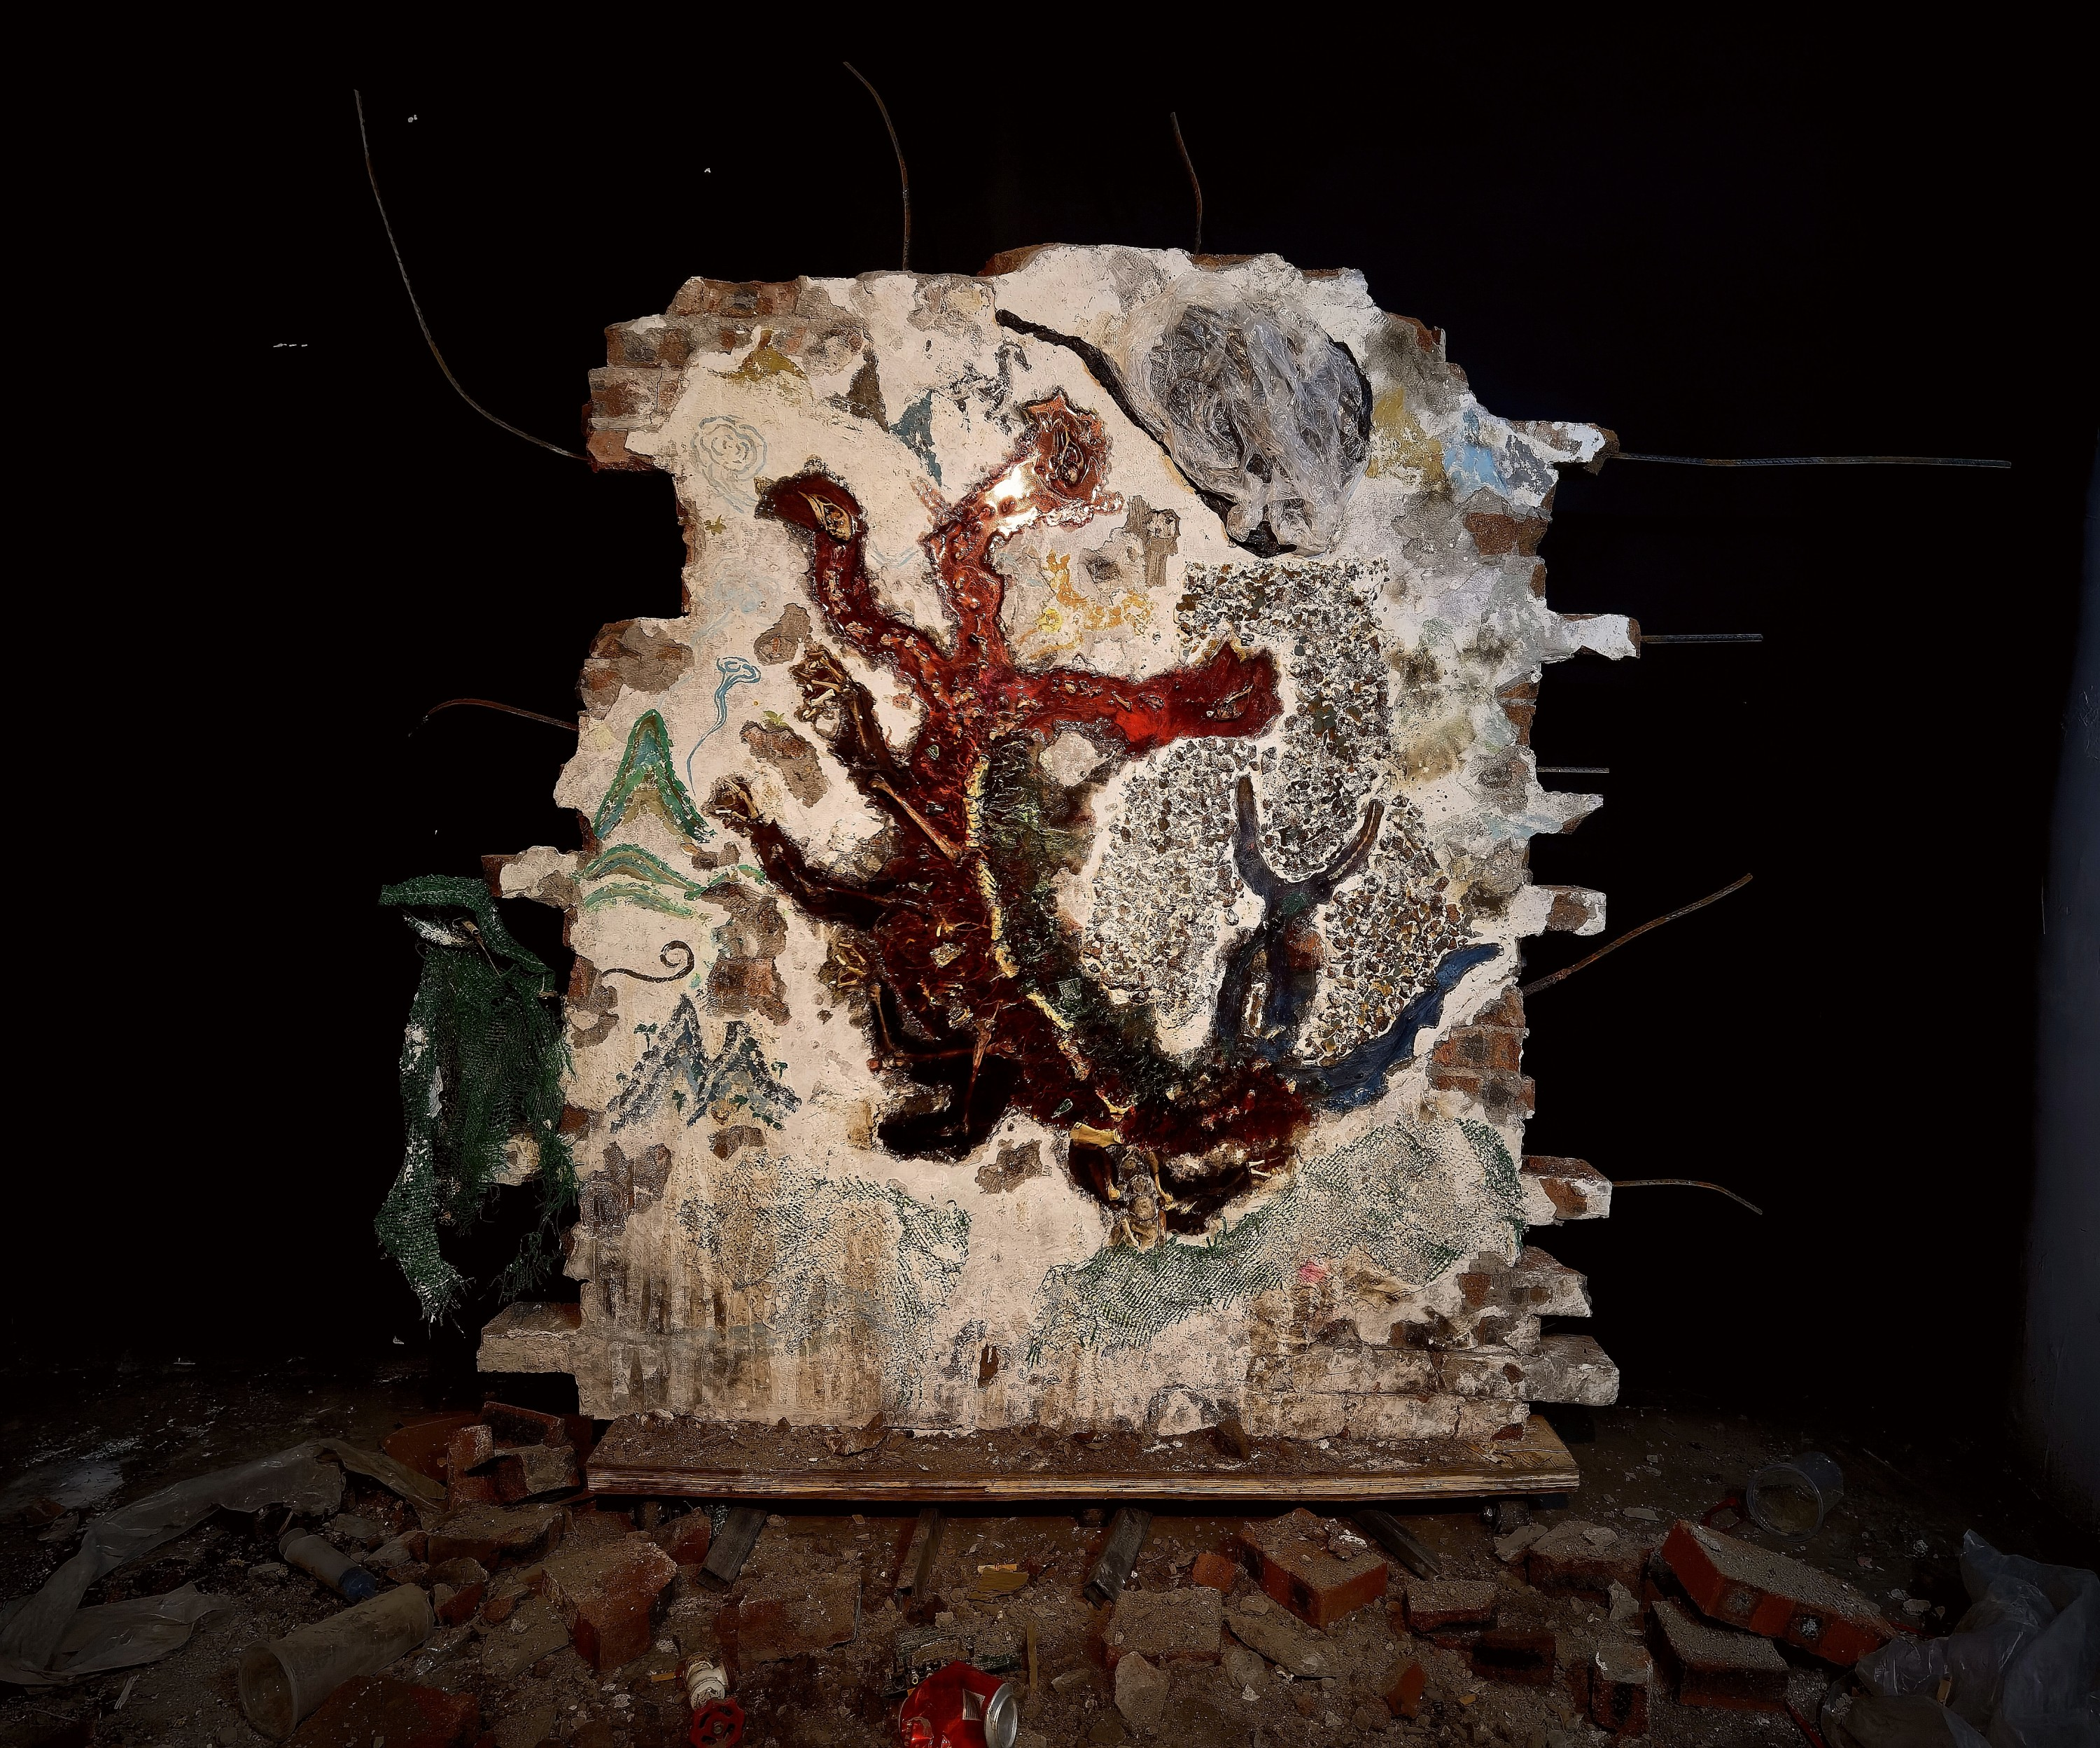 A monster made by colored epoxy inlay on the dilapidated brick wall.